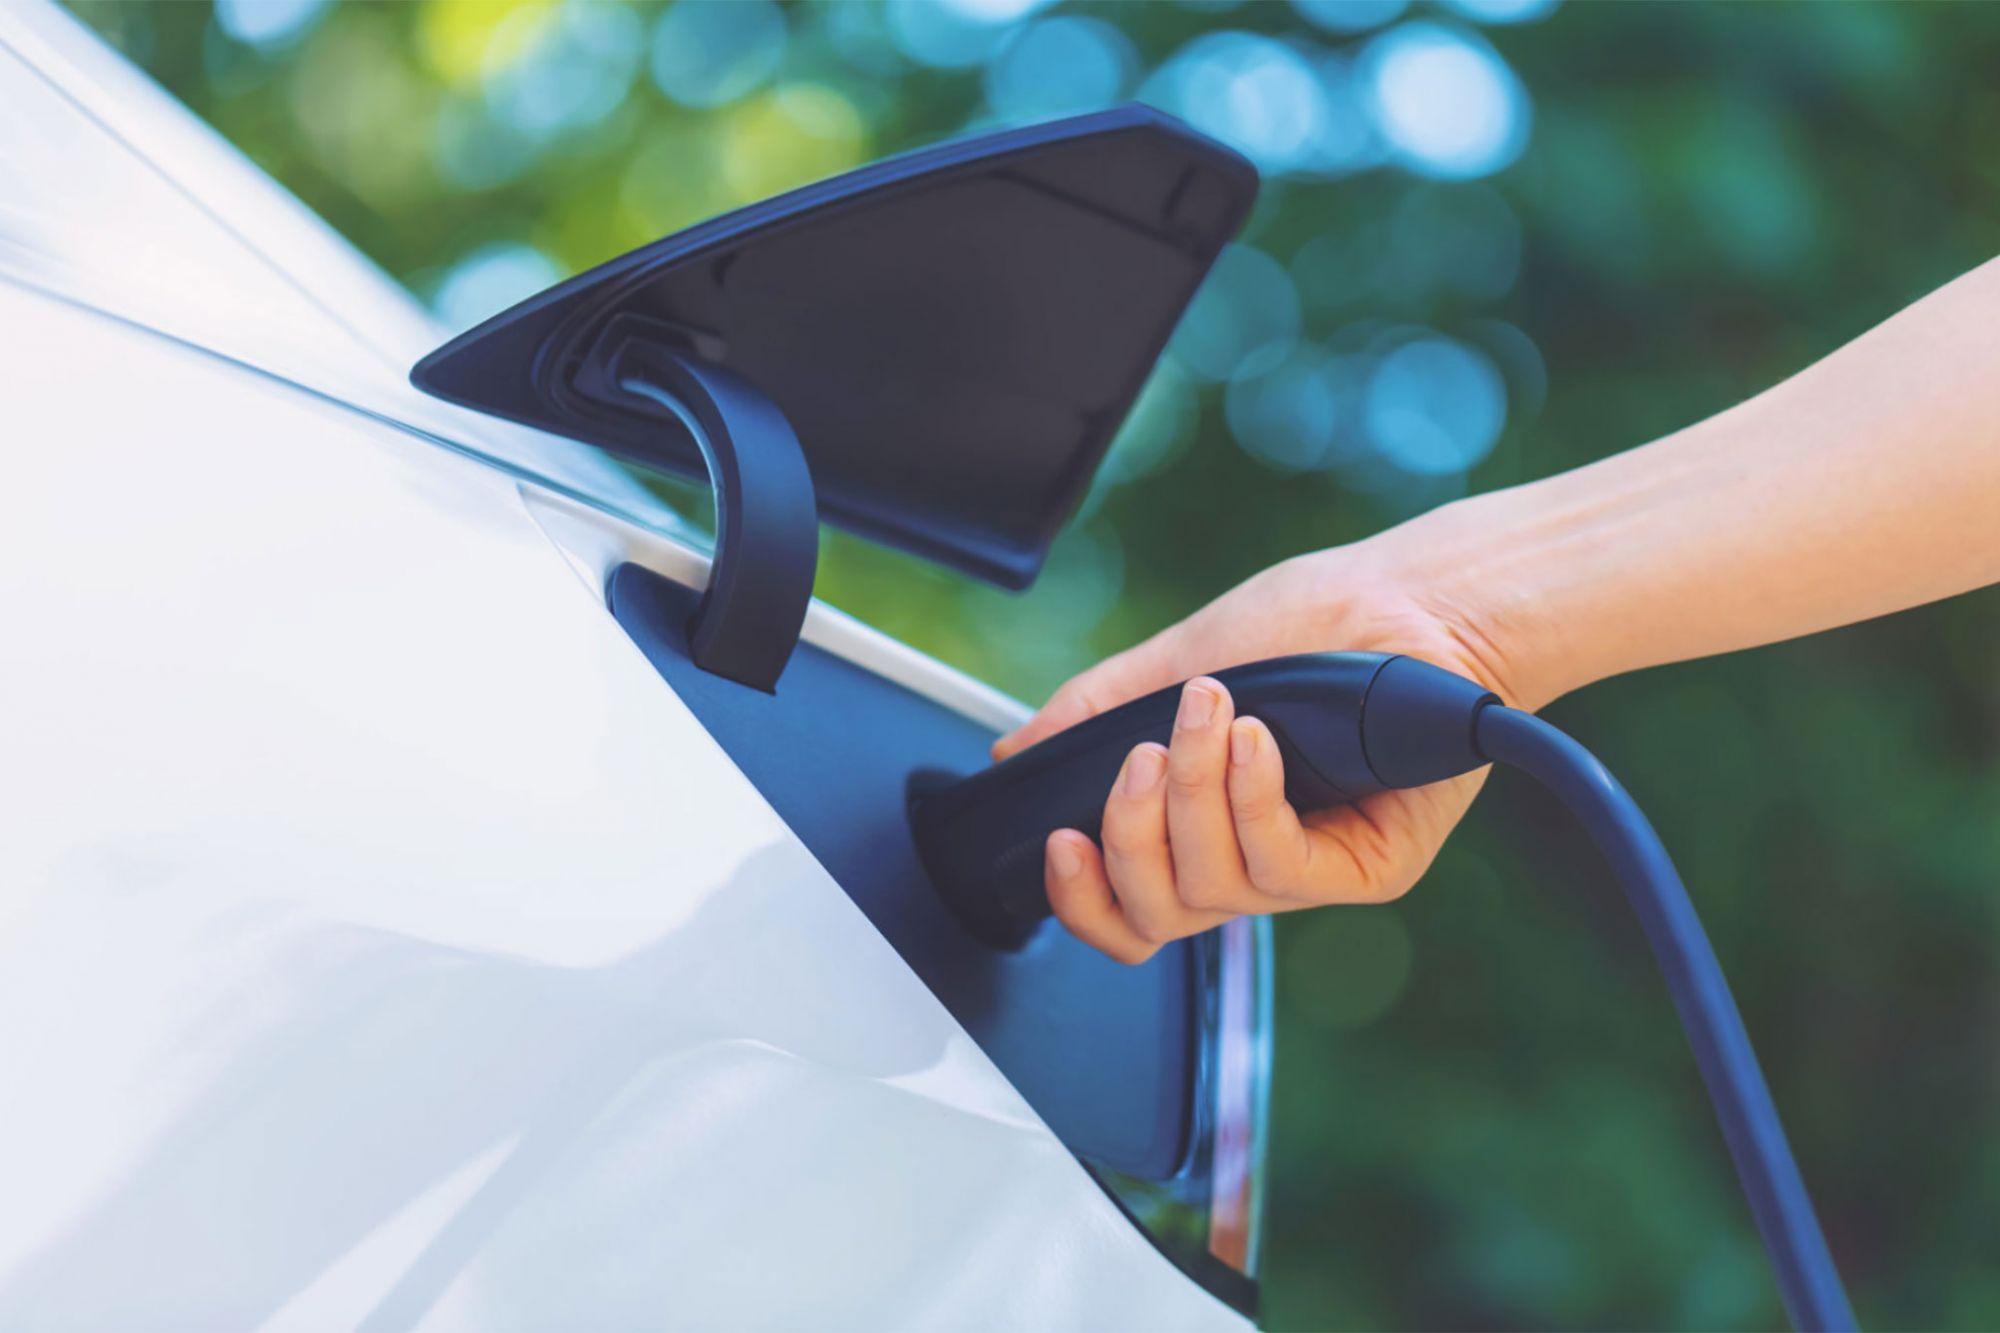 Canadian Province Will Prohibit Sale of Gas-Powered Cars by 2040